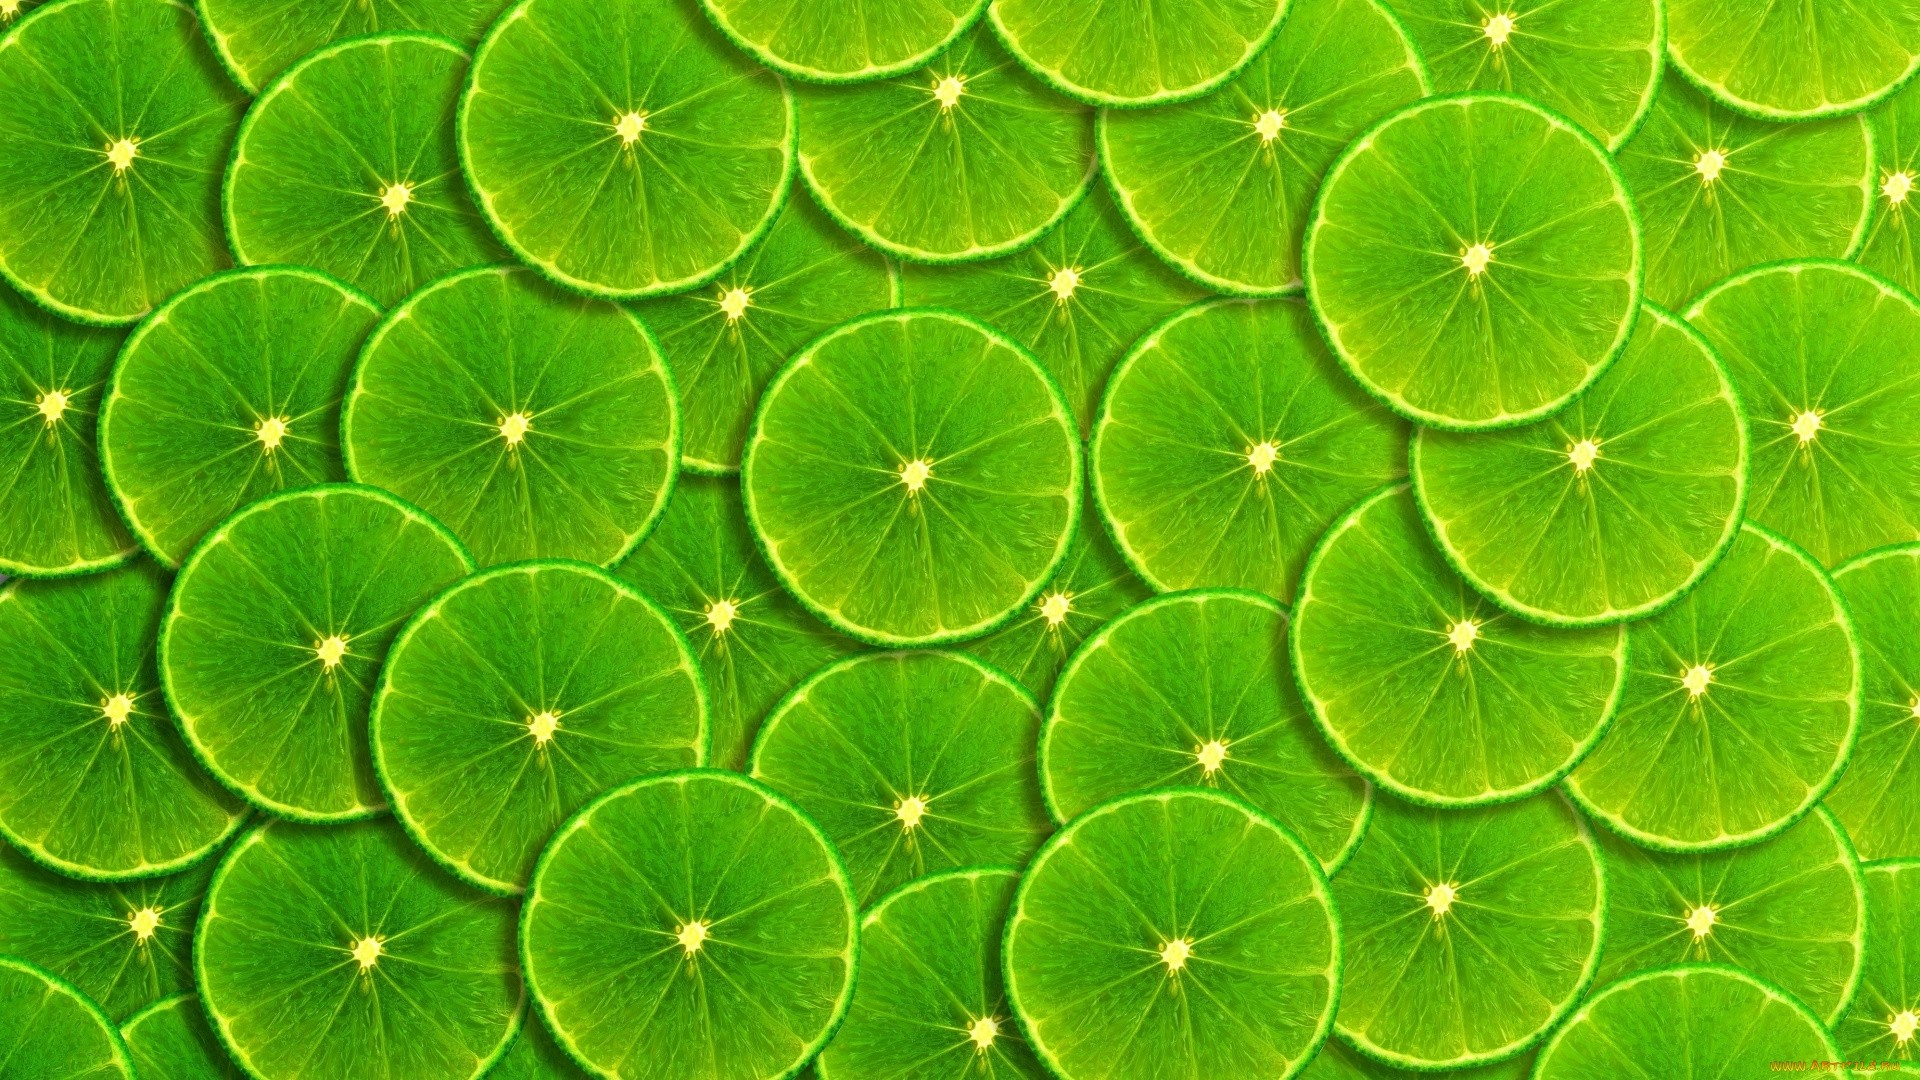 Lime Green Full HD Wallpaper